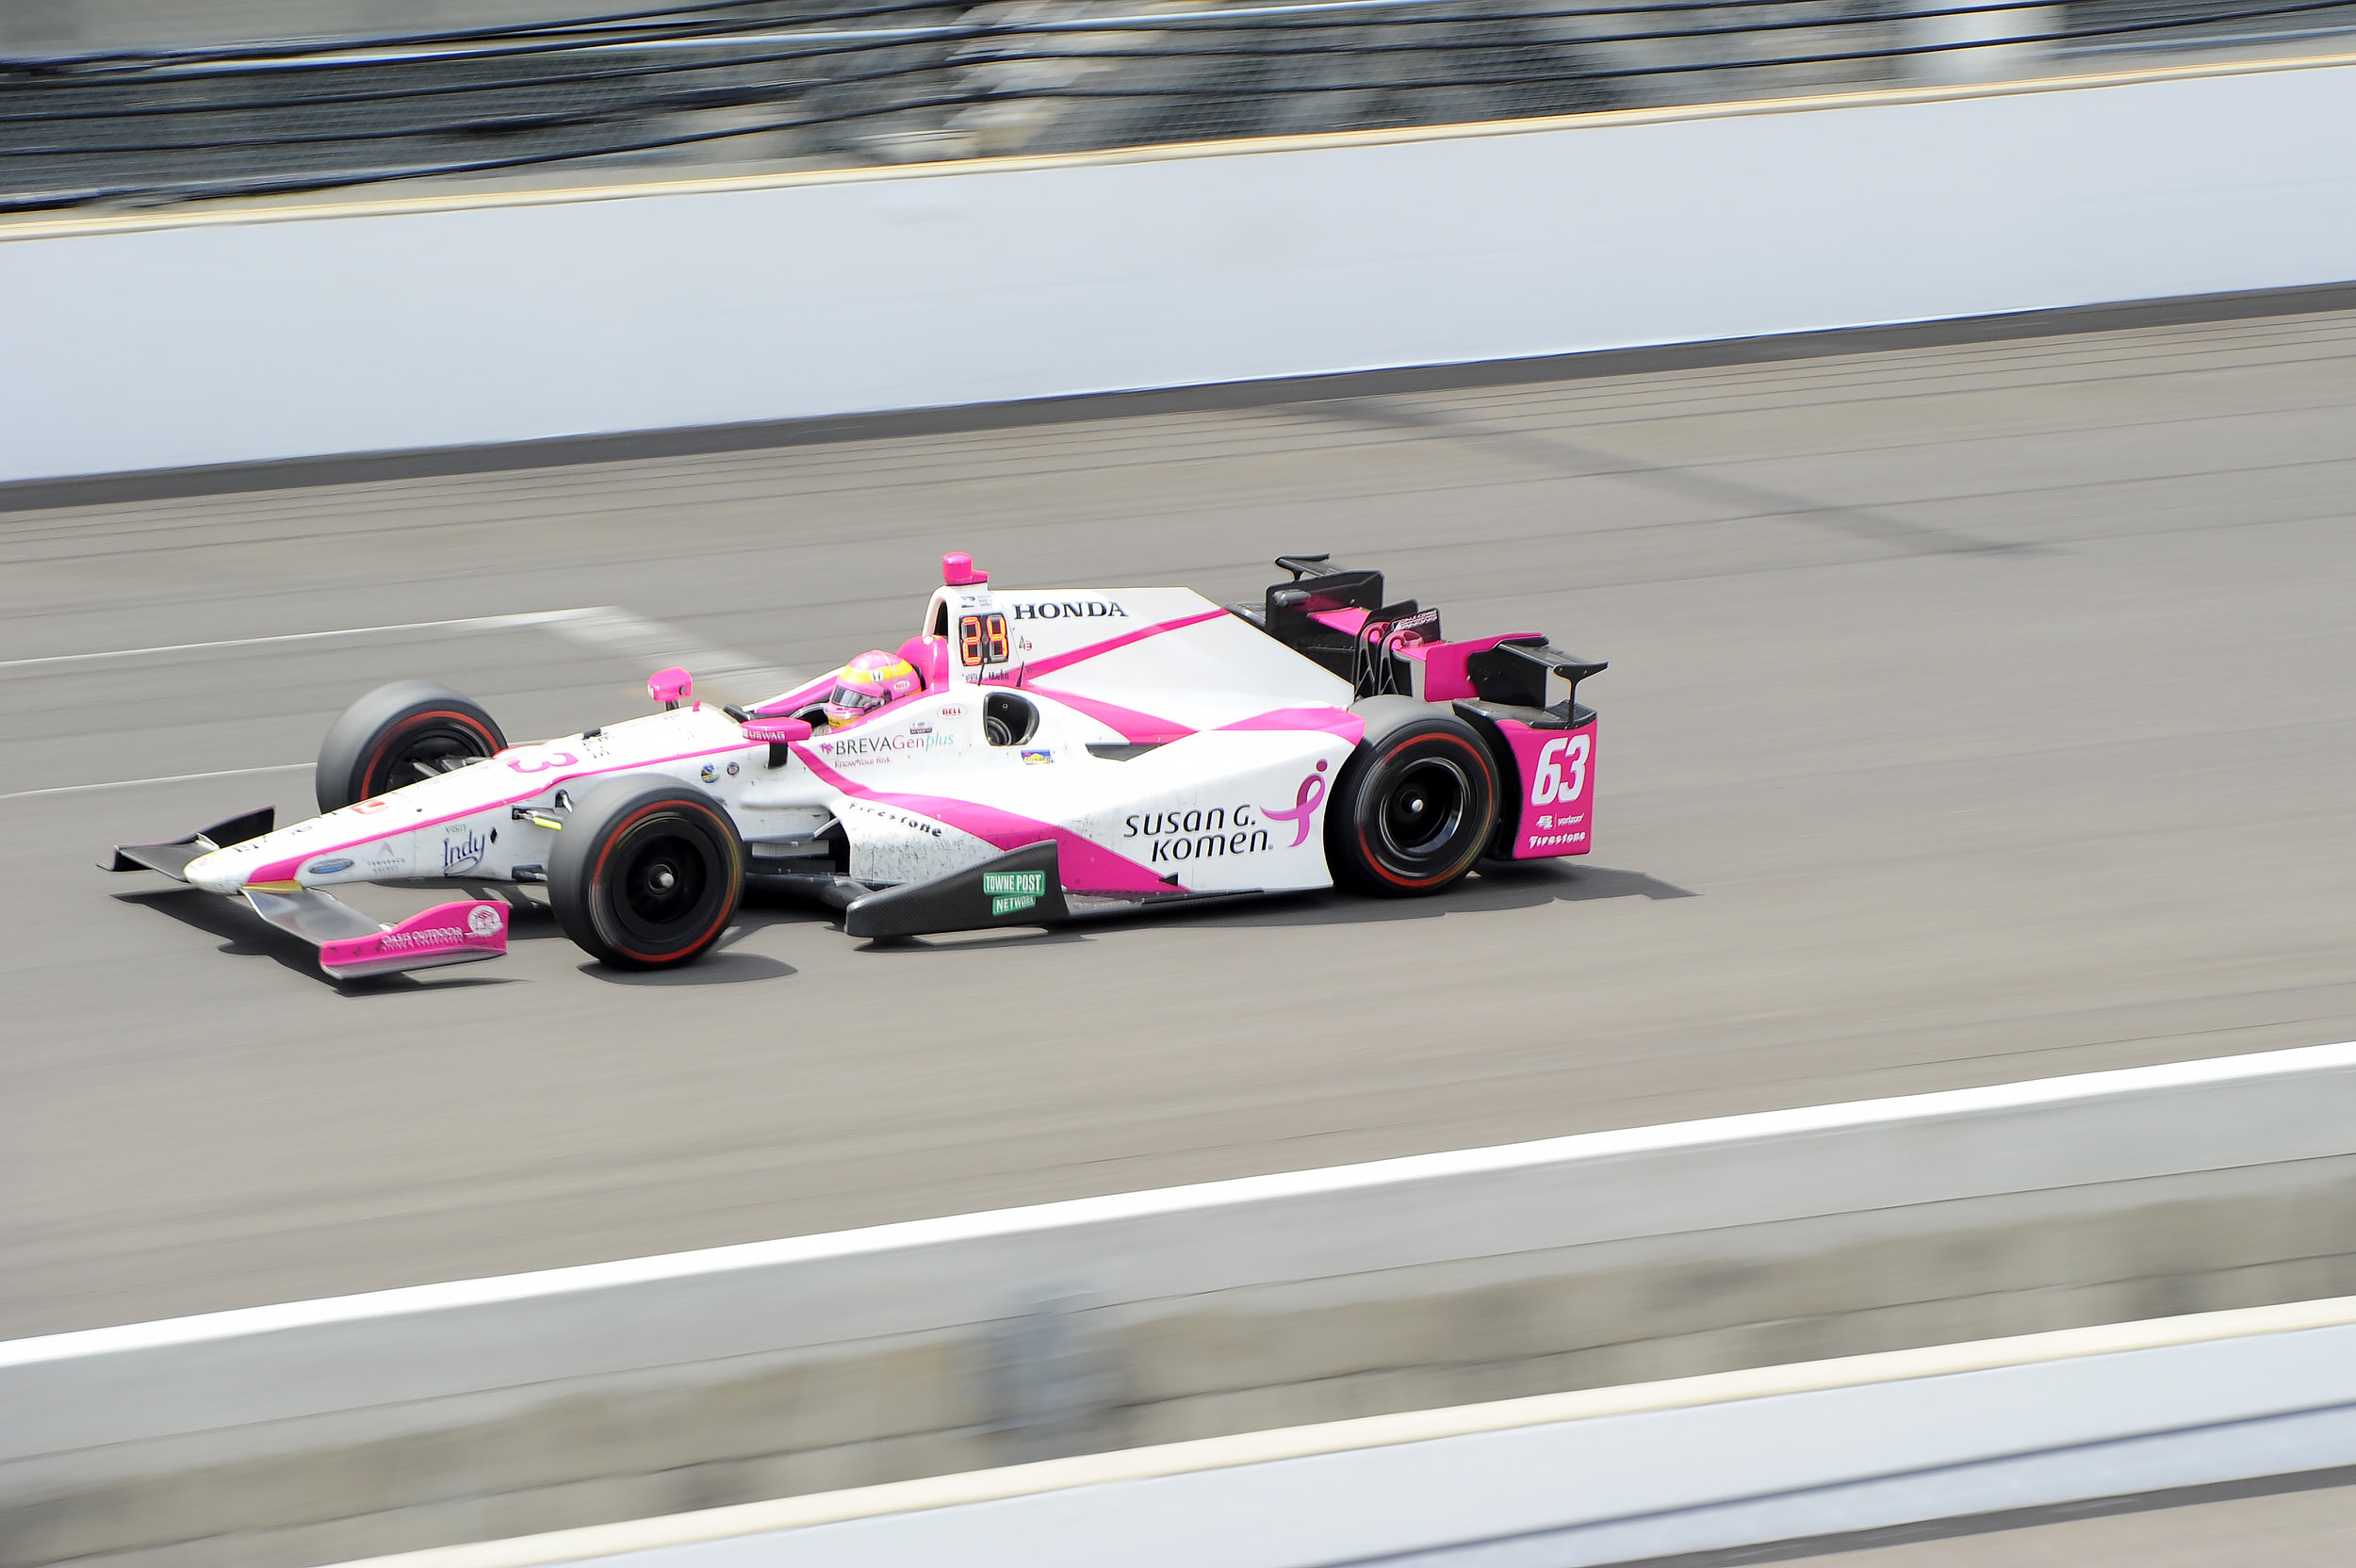 Pippa Mann flys down a straightaway at Indianapolis Motor Speedway during the 101st running of the Indy 500 on Sunday, May 28, 2017. Mann, the only female competitor, finished 17th.